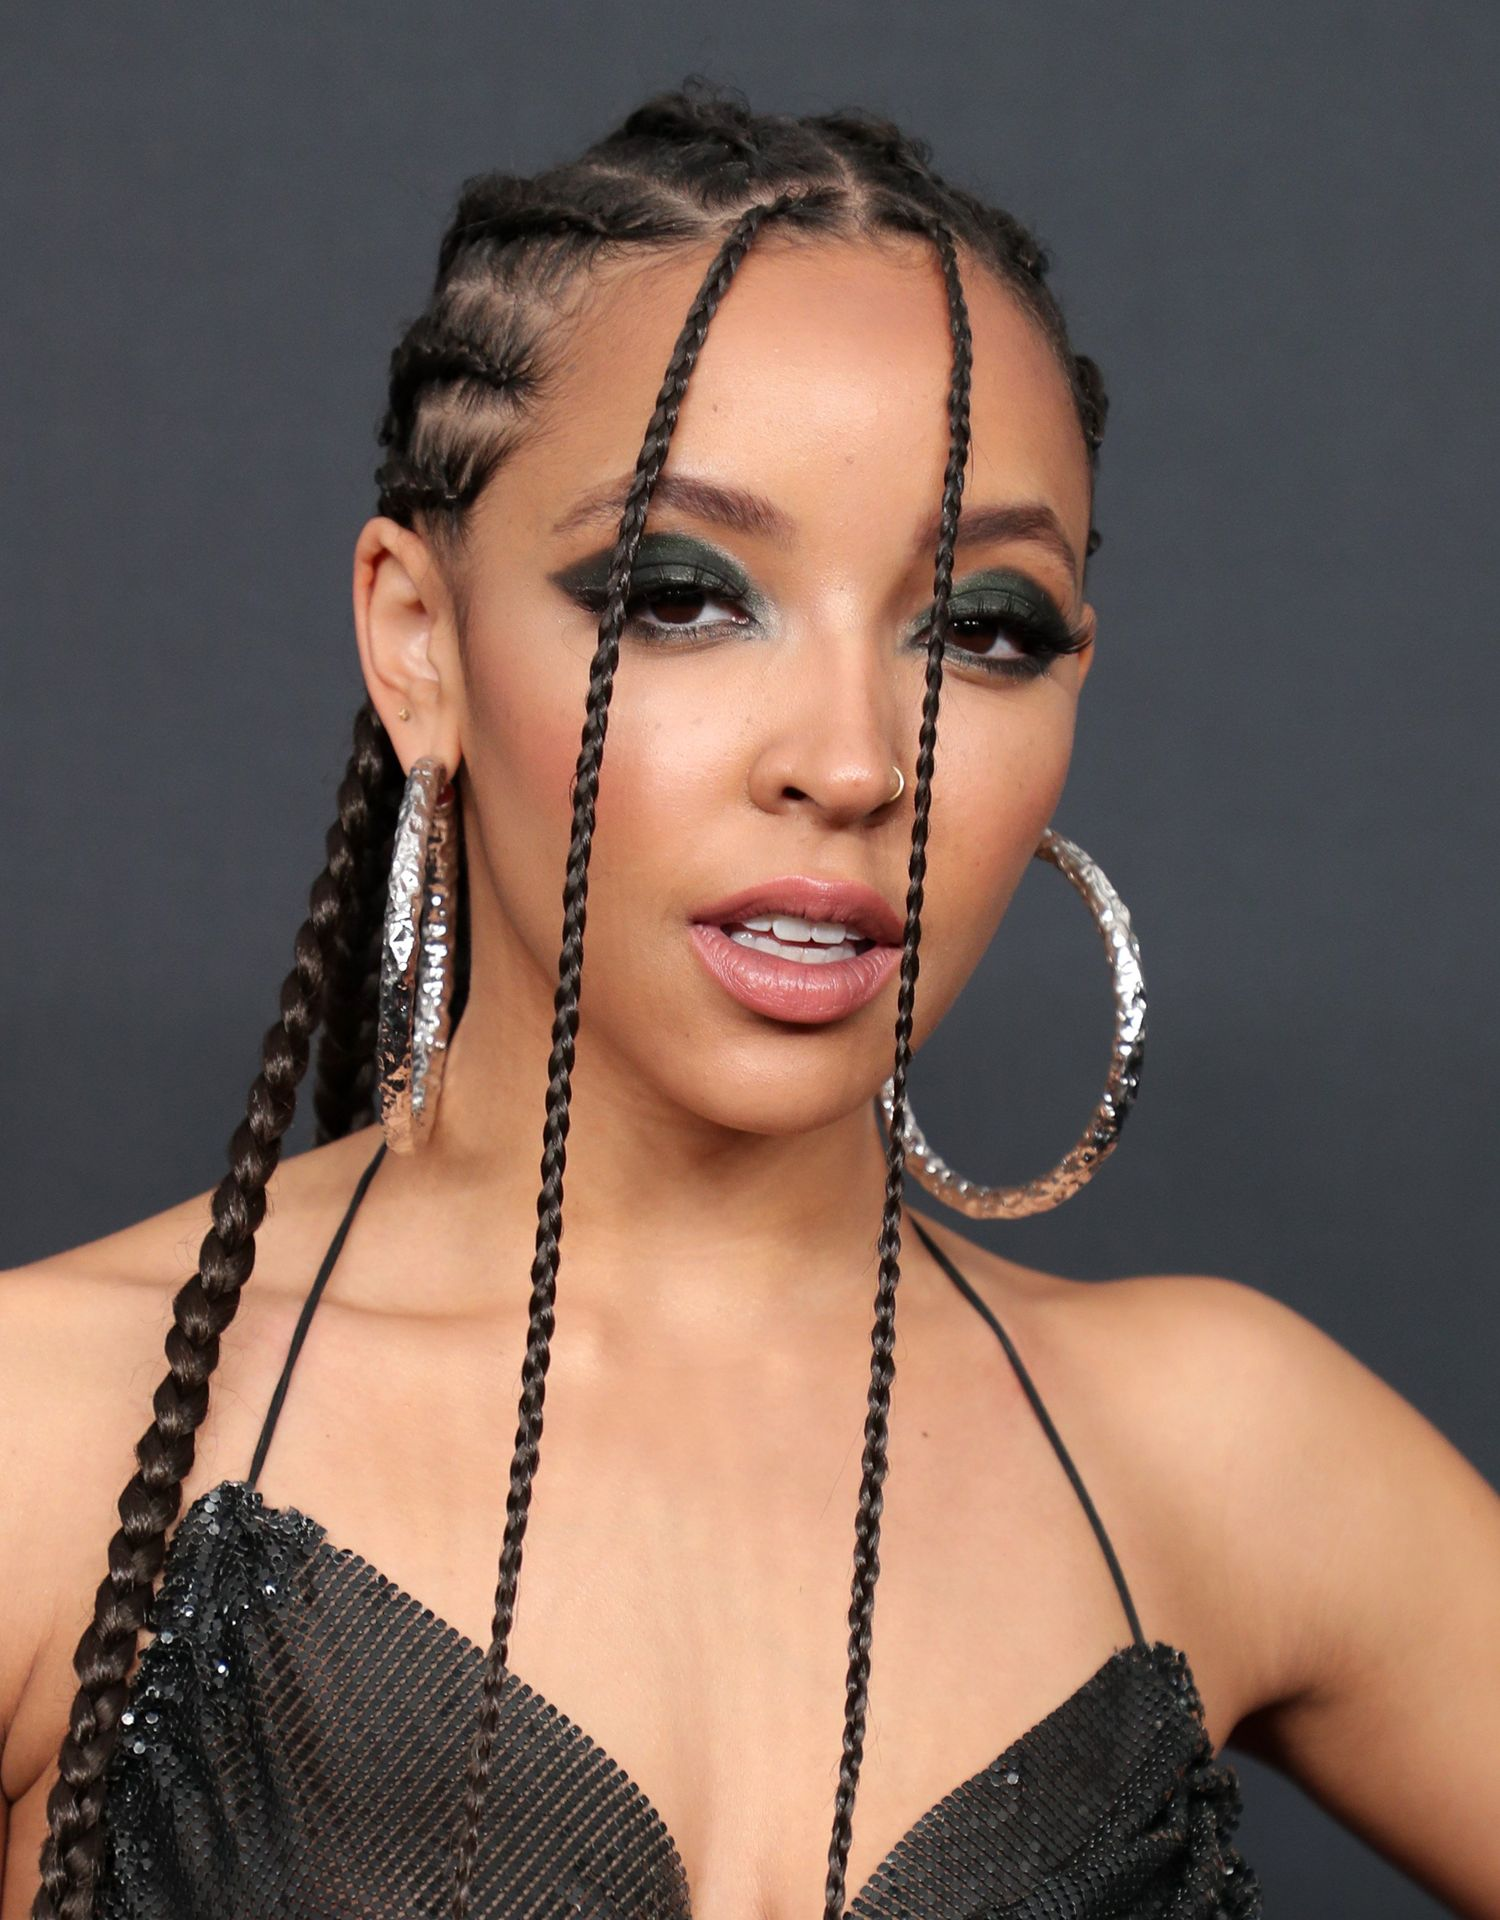 Tinashe Flaunts Her Tits At The Spotify Best New Artist Party 0011